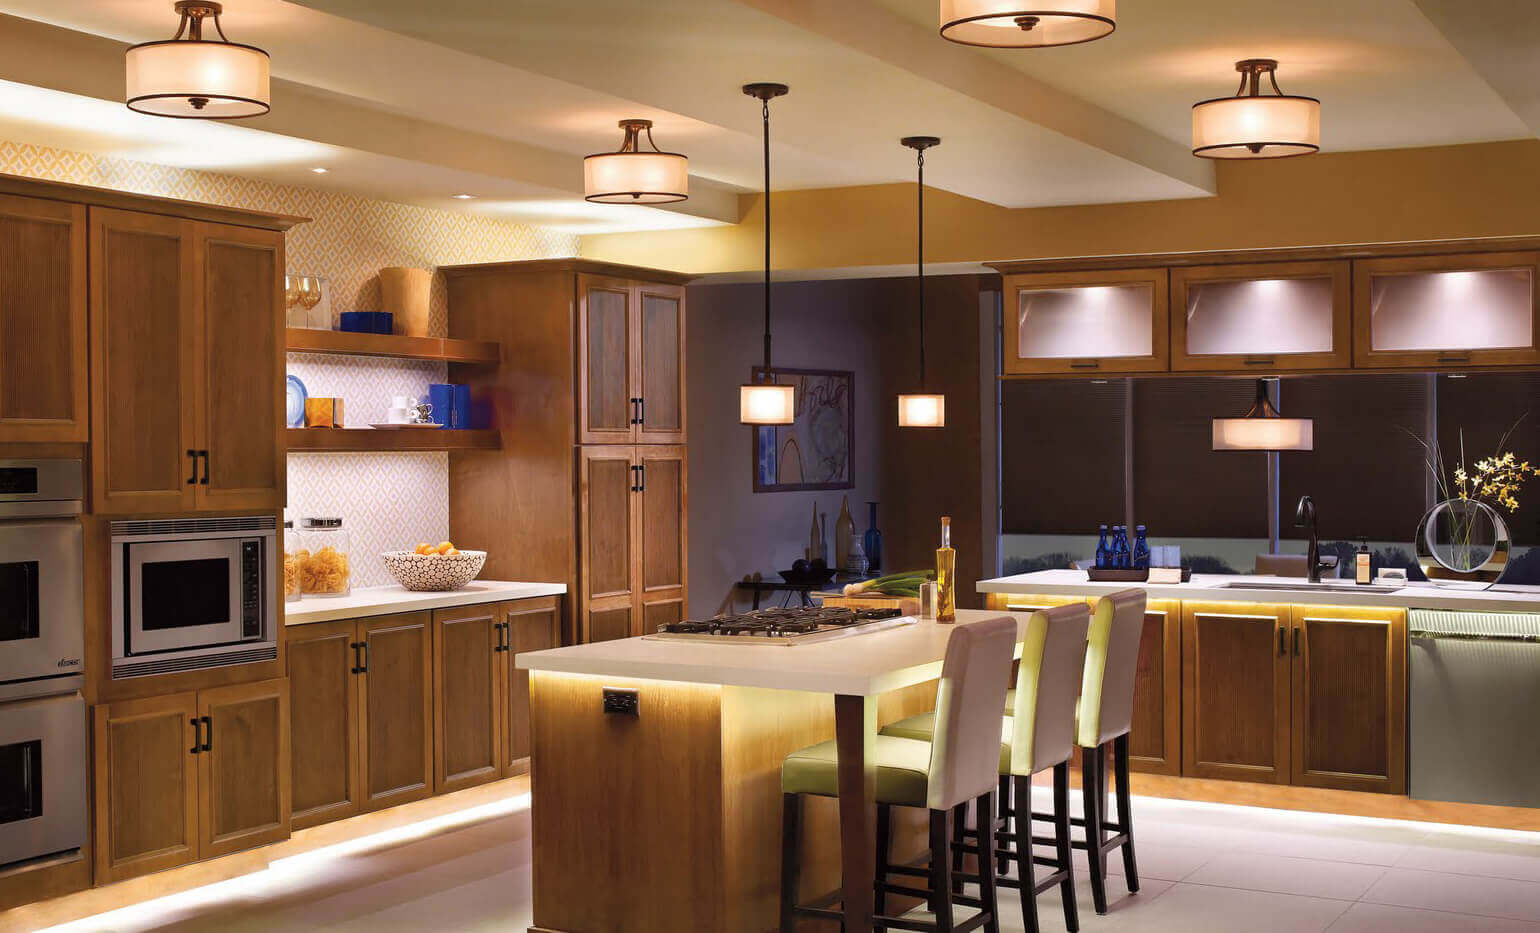 Modern Kitchen Lights Ceiling